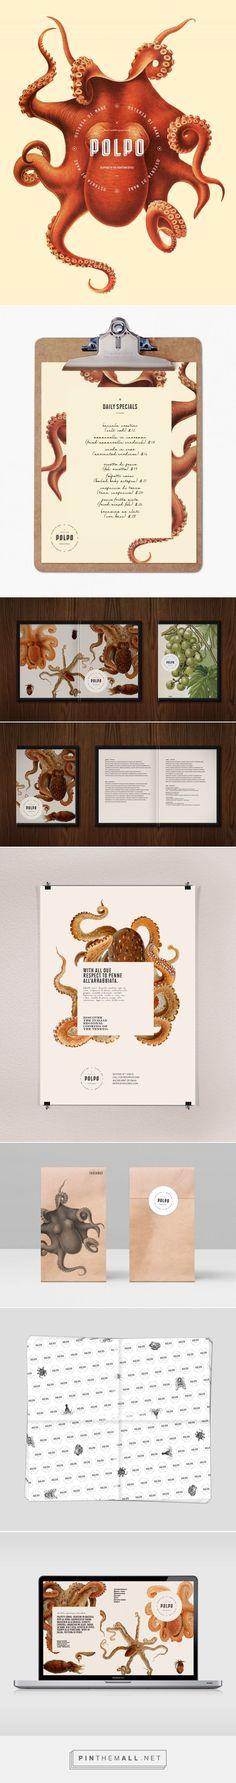 Polpo Restaurant Branding and Menu Design by Richard Marazzi | Fivestar Branding Agency – Design and Branding Agency & Inspiration Gallery